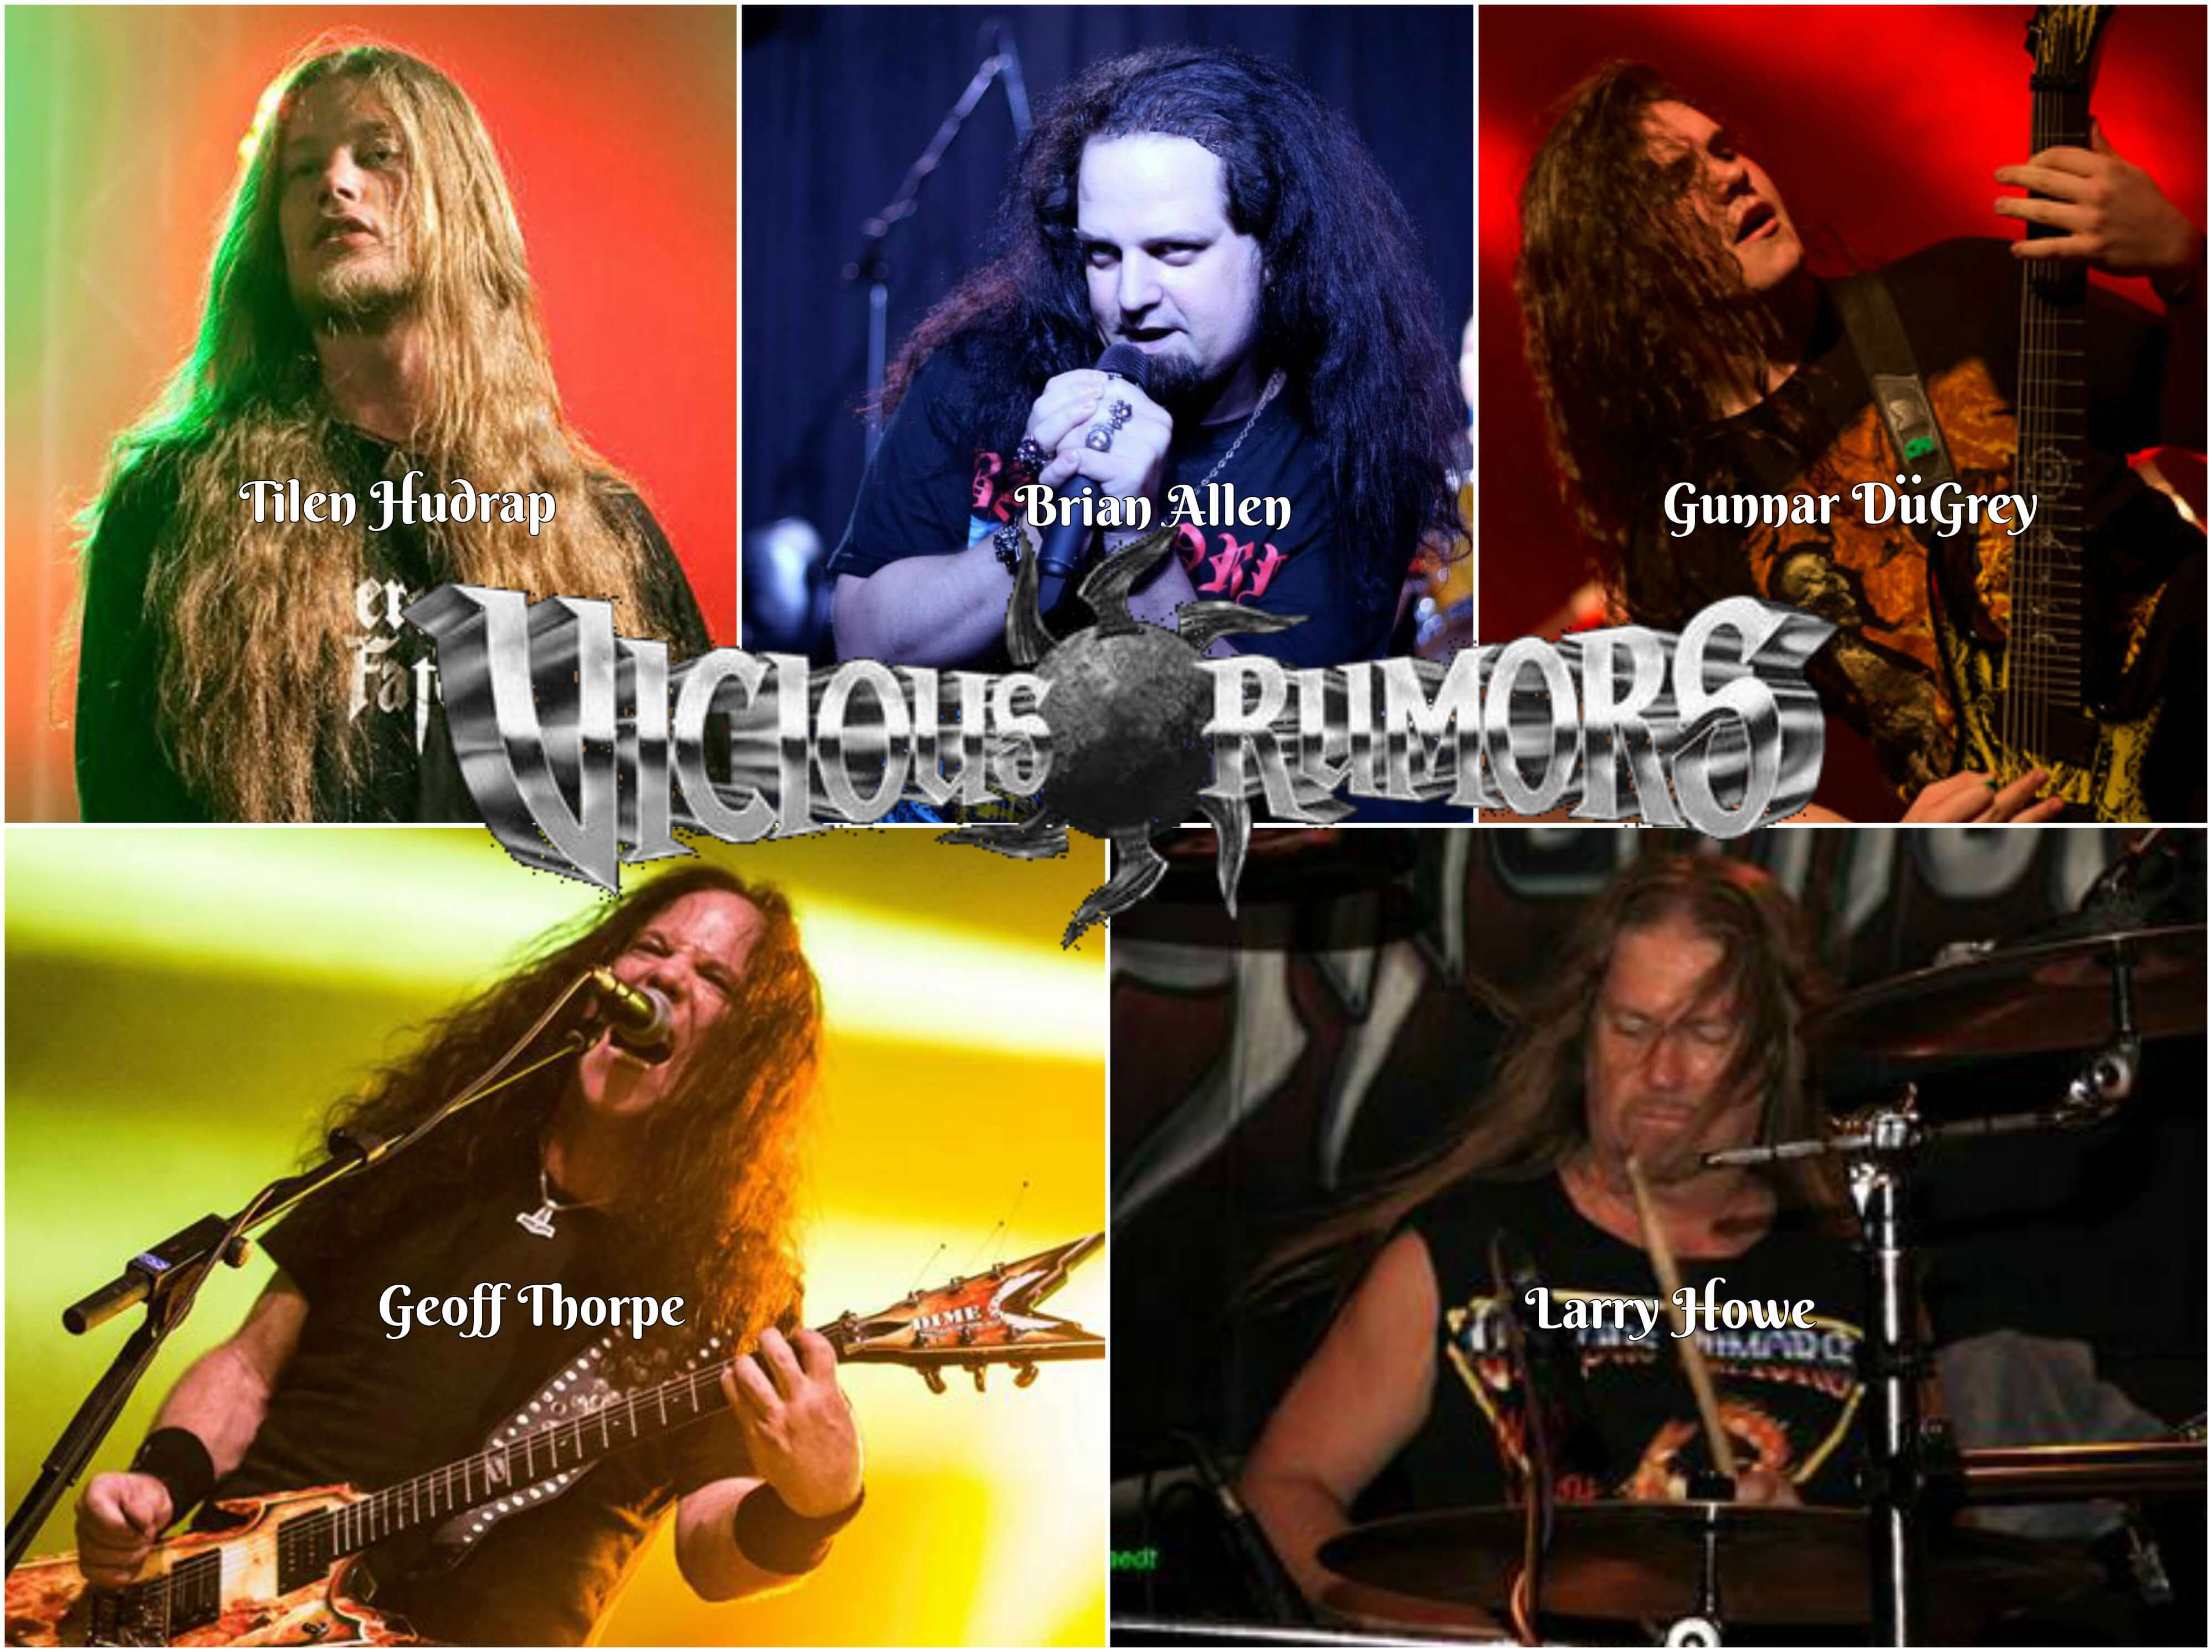 Vicious rumors 2017 pic 1